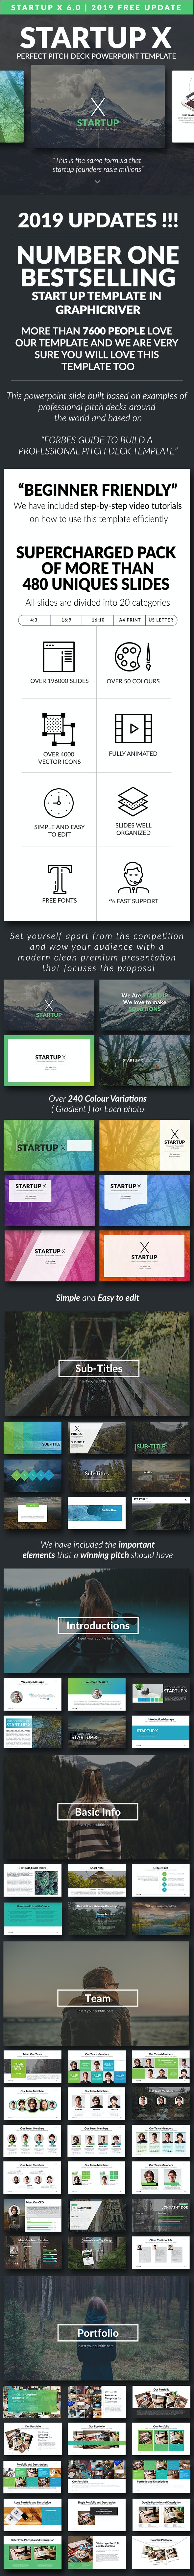 Startup X – Perfect Pitch Deck Powerpoint Template [2019 Update] - PowerPoint Templates Presentation Templates